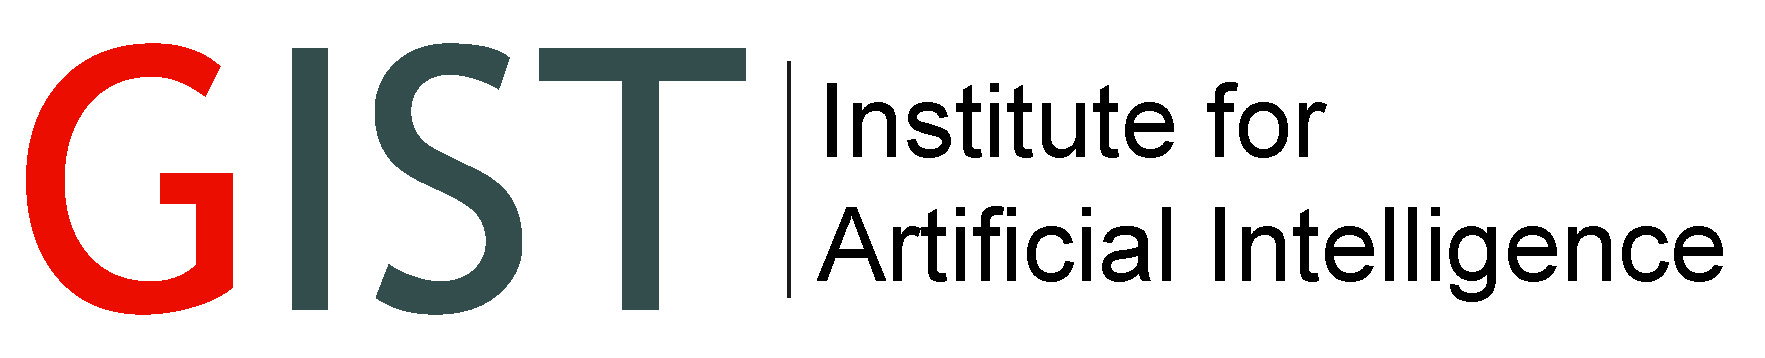 Artificial Intelligence Research Institute